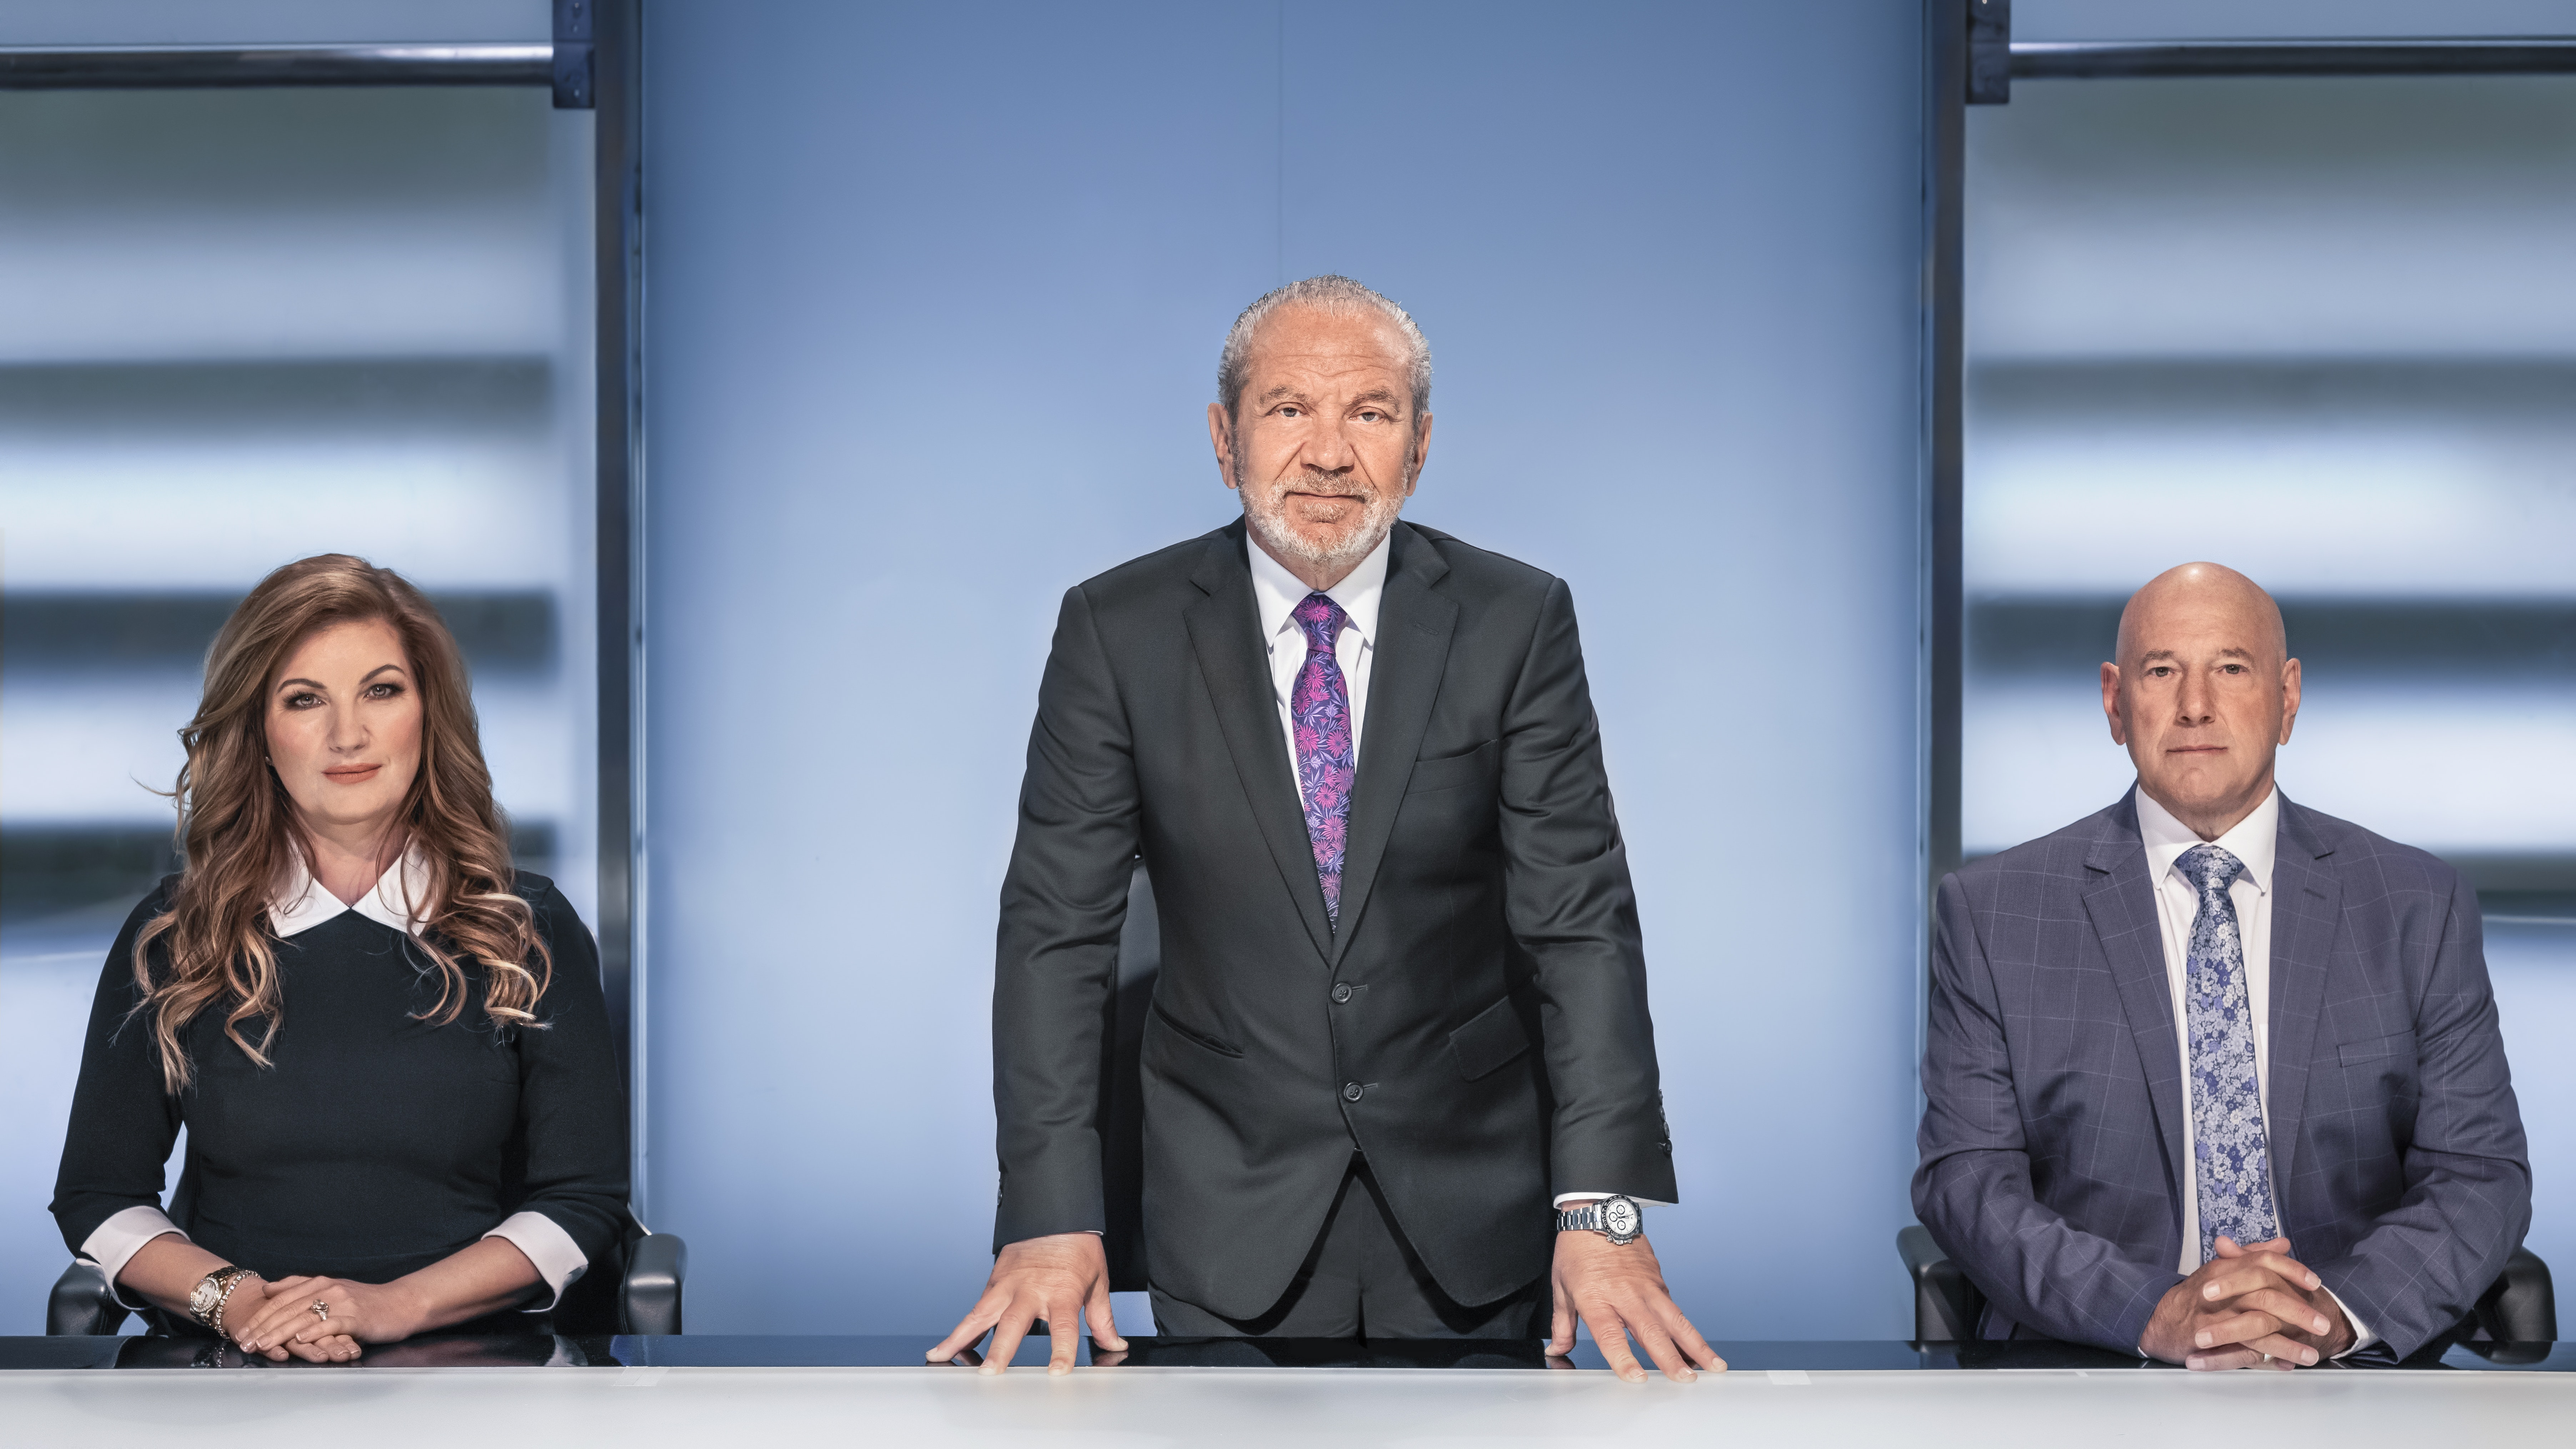 bbc iplayer the apprentice meet candidates images